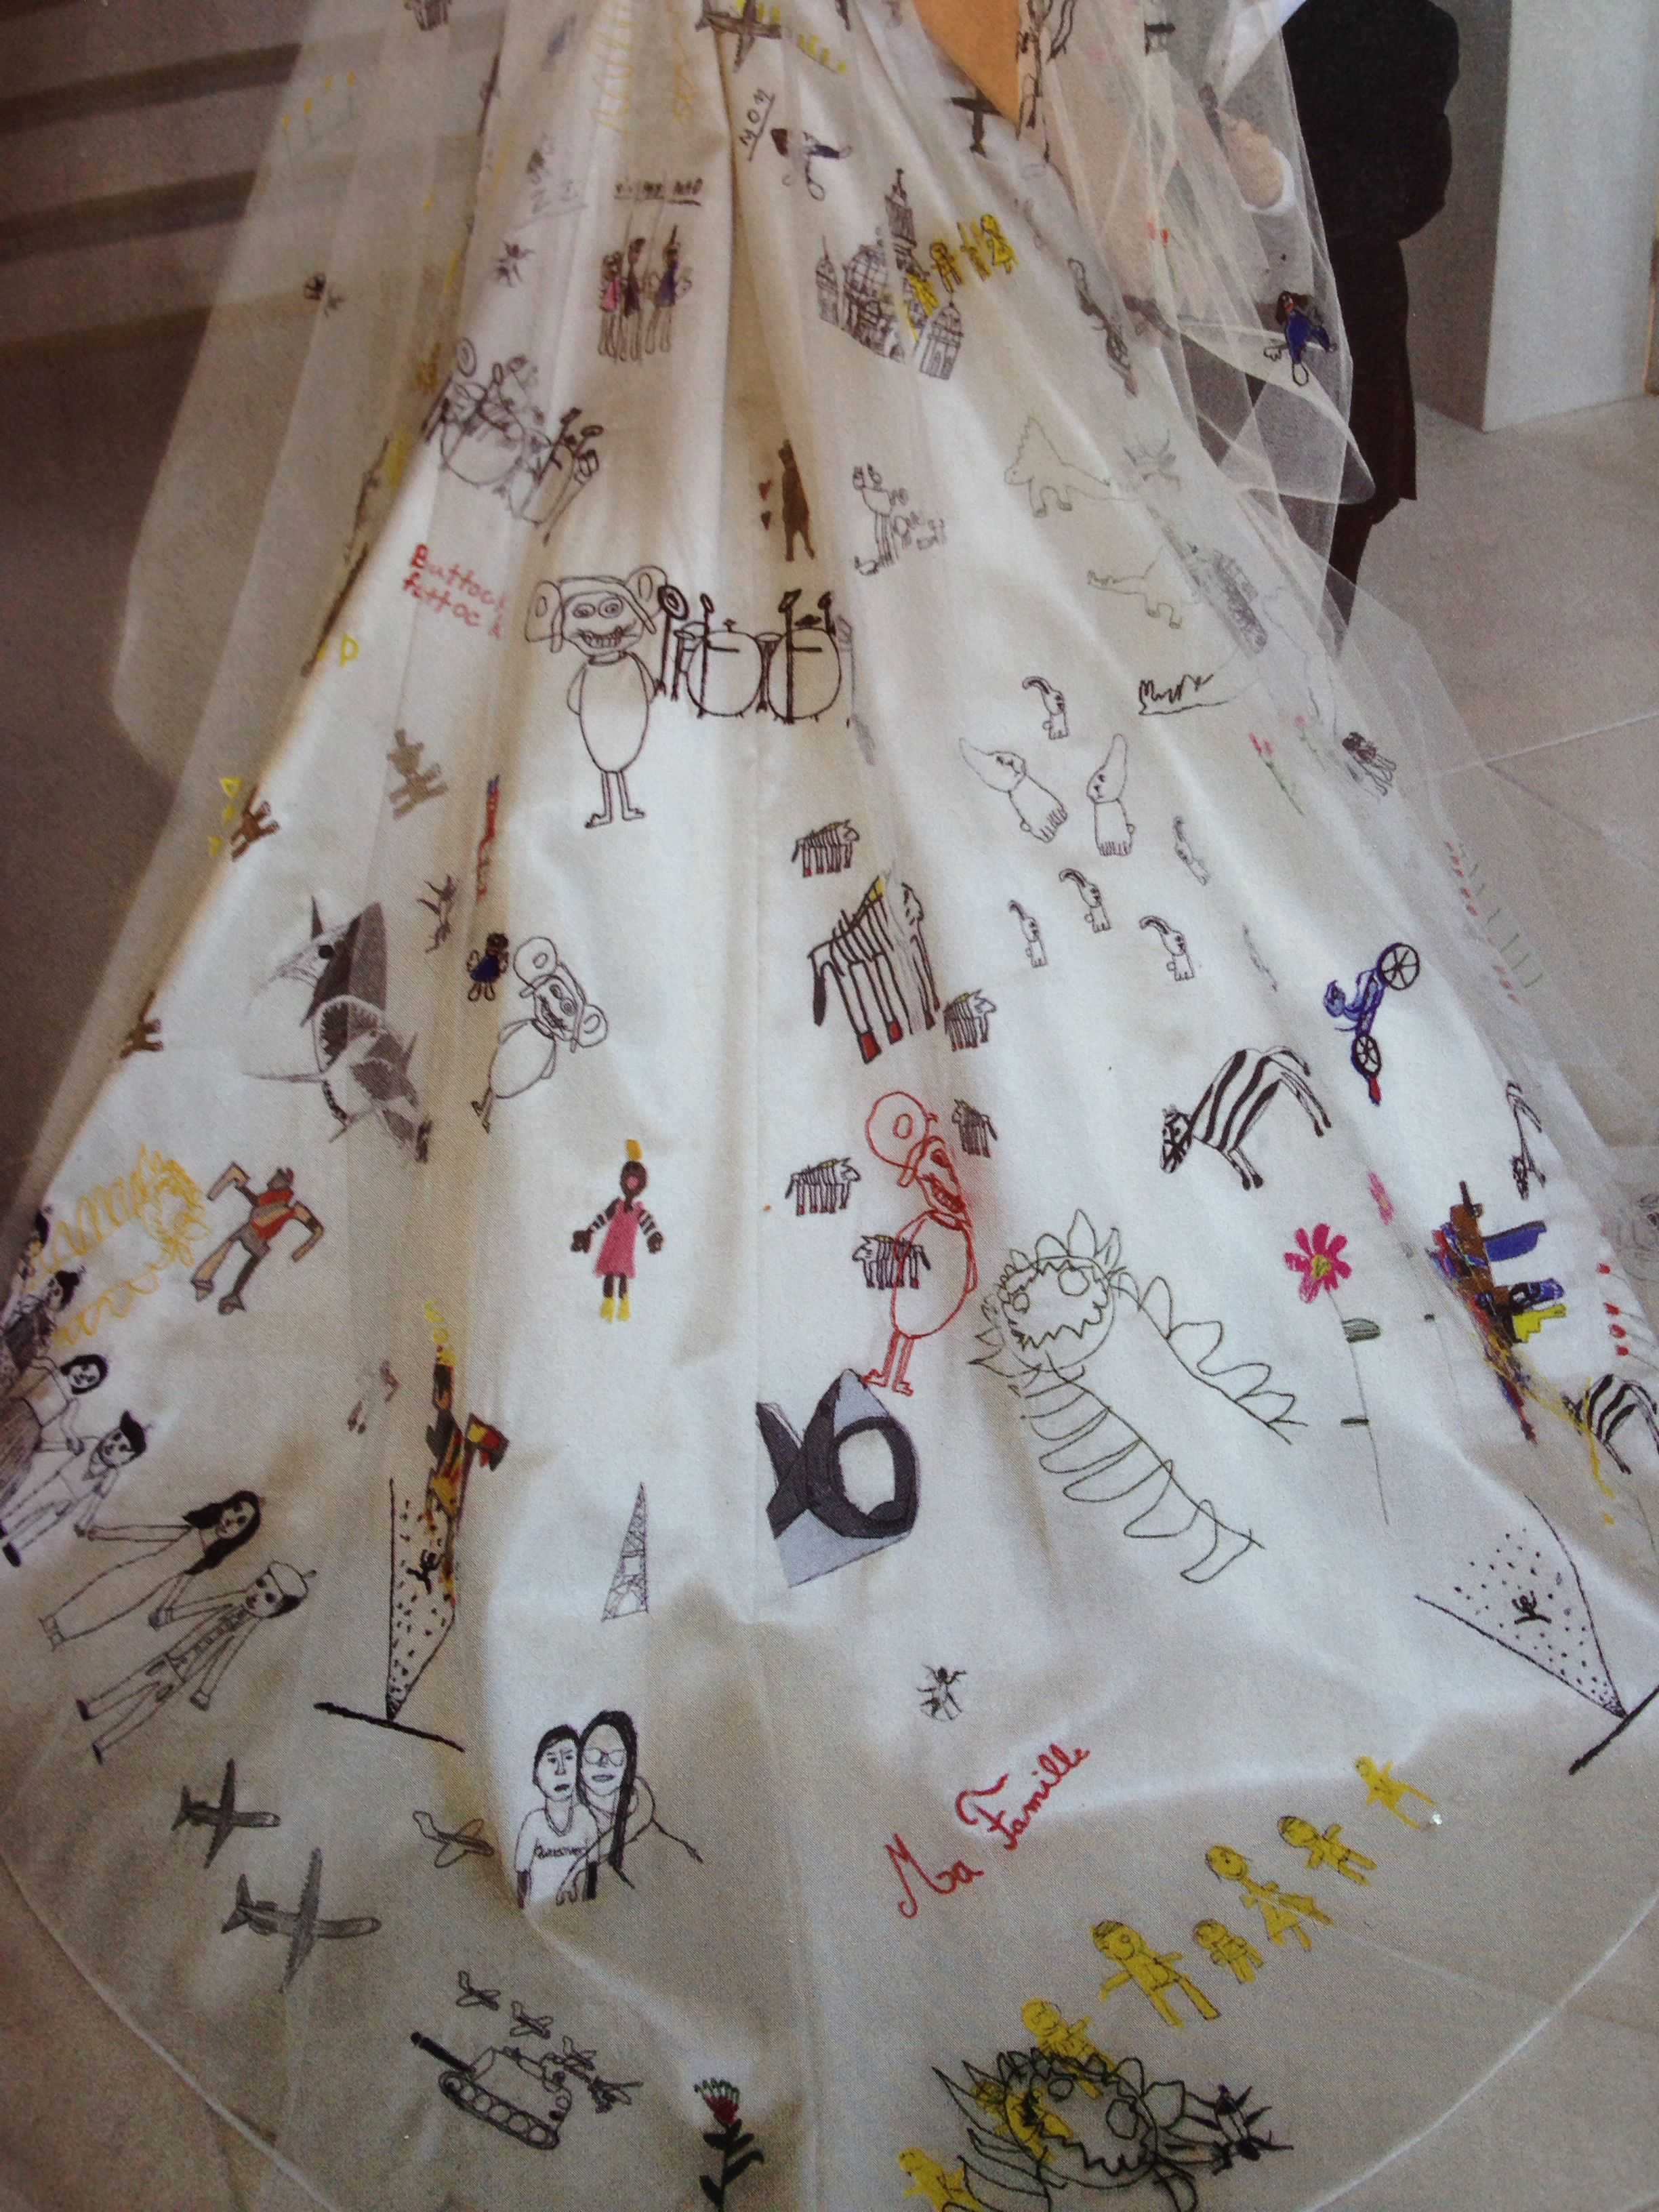 Angelina Jolie S Hand Embroidered Wedding Gown With Their Kids Drawings